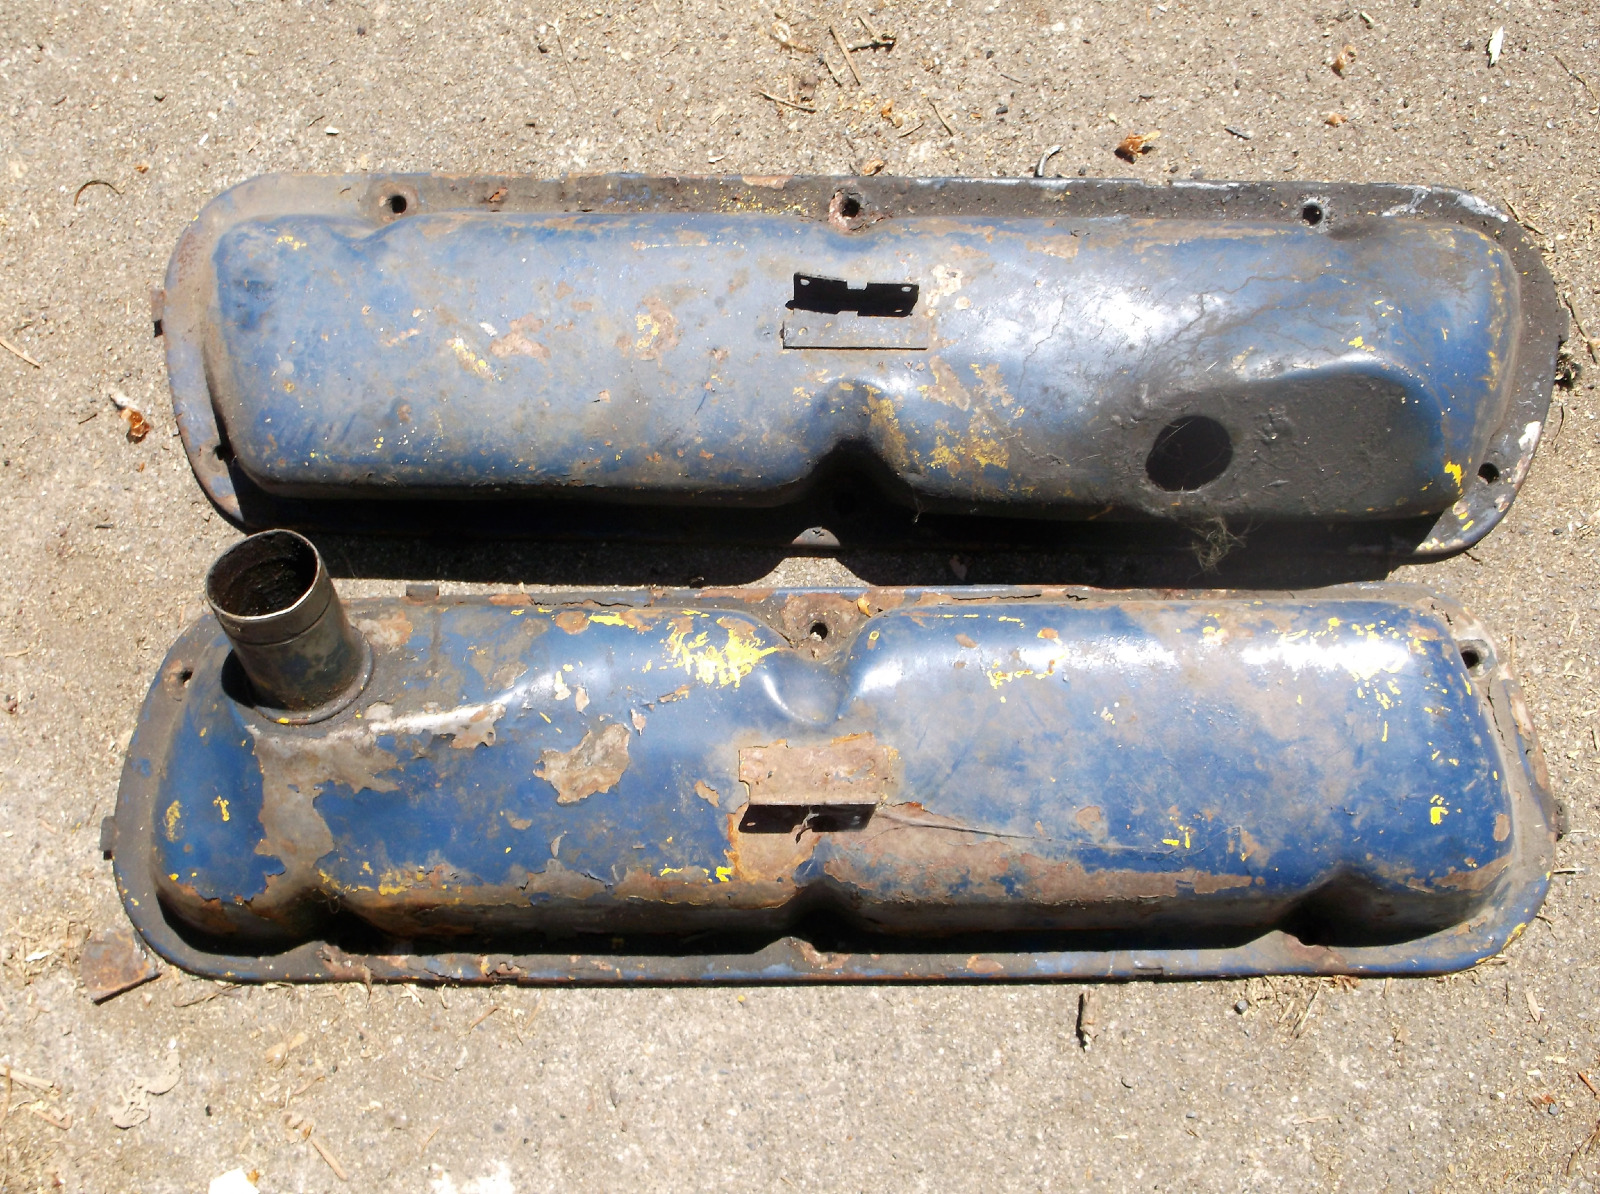 1963 ford galaxie parts ebay - 1965 1966 Mustang 289 V8 Valve Covers Cover Original A C Code Challenger Special Fits Ford Fairlane